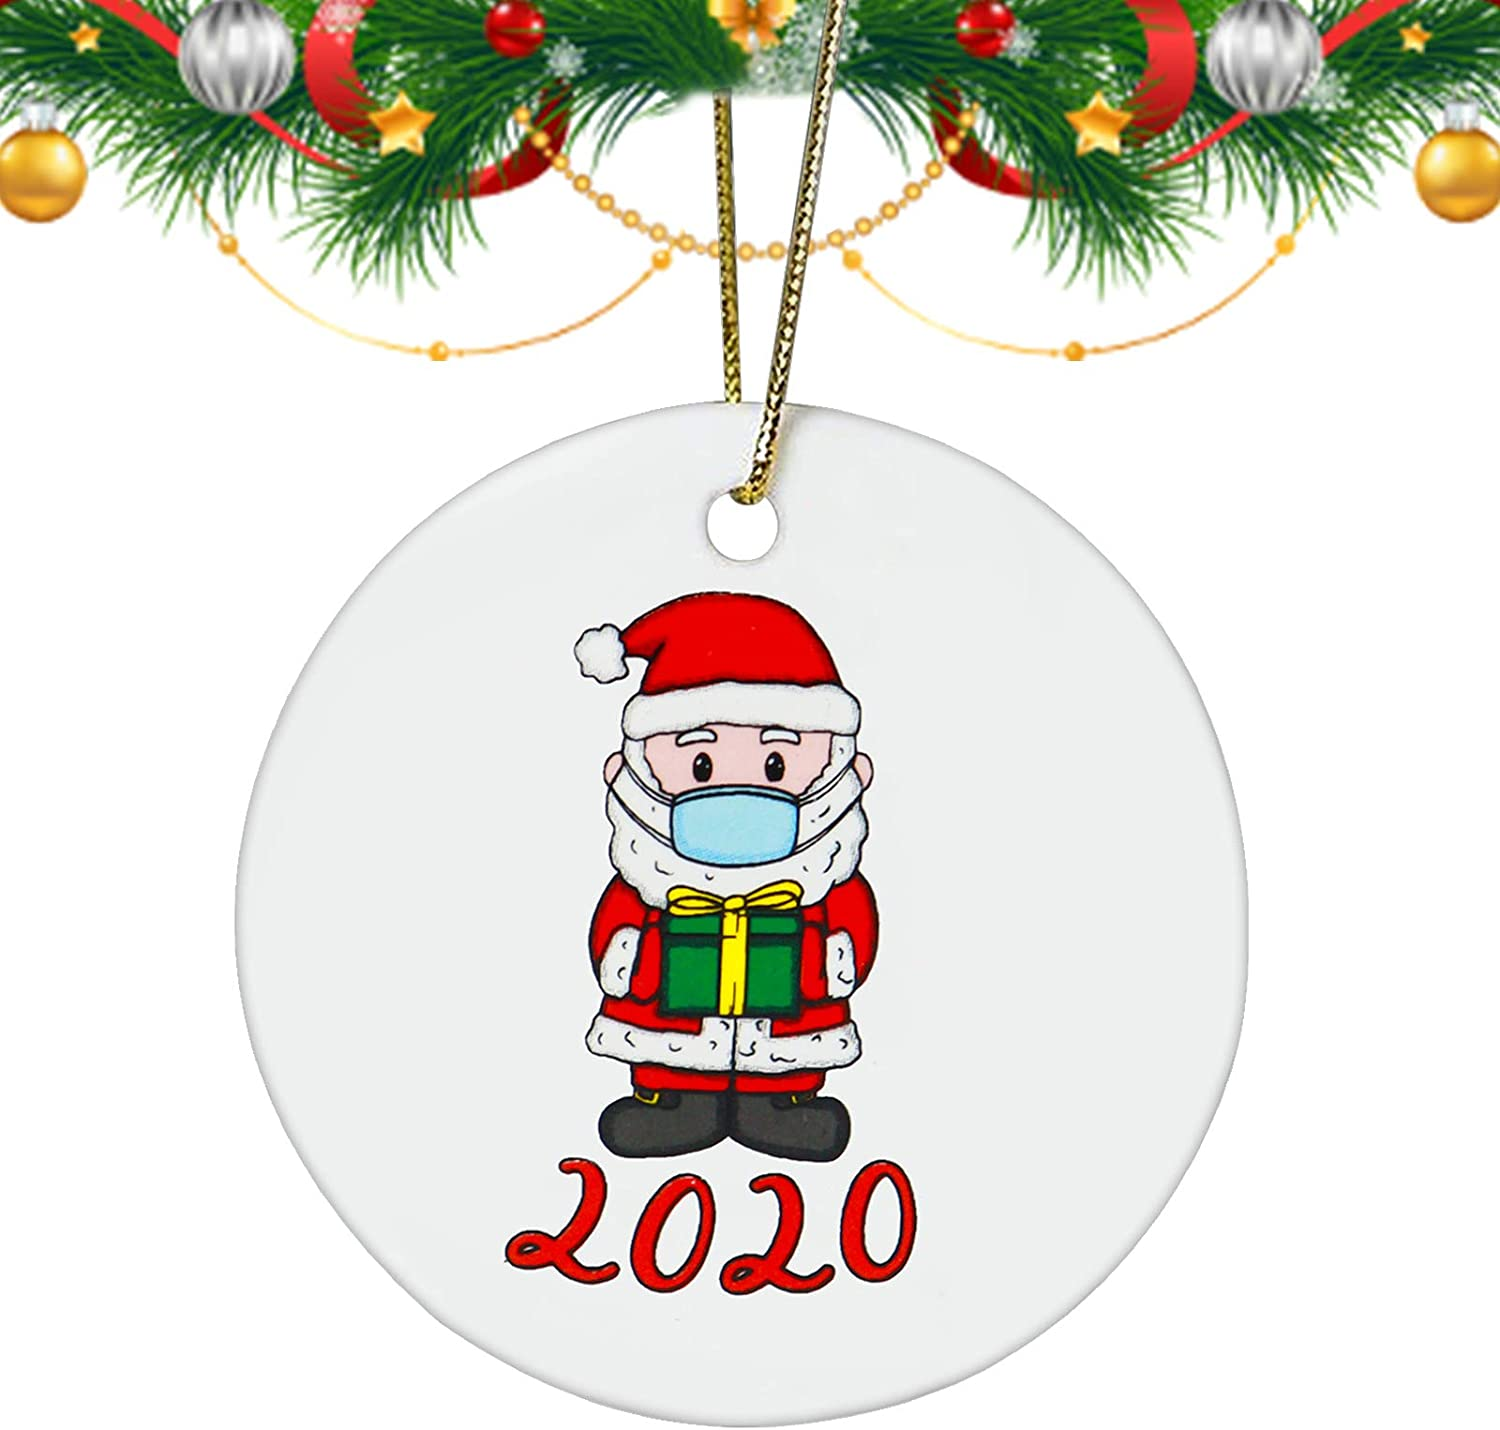 Ecledo 2020 Christmas Ornament Funny Pendant 2.8 inch Ceramic Round Holiday Mask Santa Claus Dog Christmas Ornament Pandent for Family Friends (B)